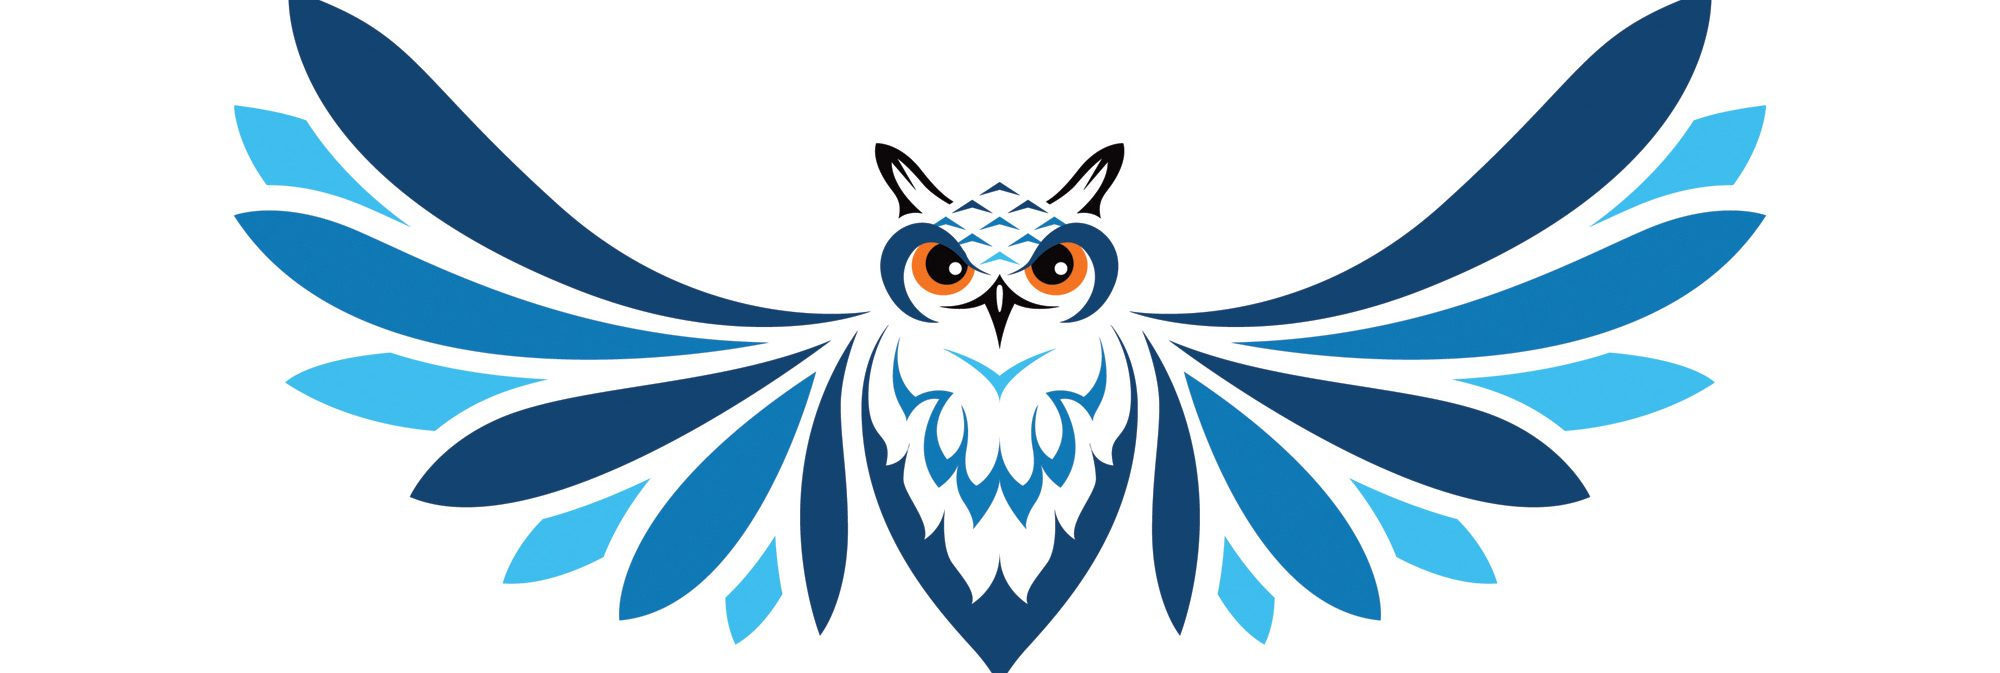 Central Tech owl logo